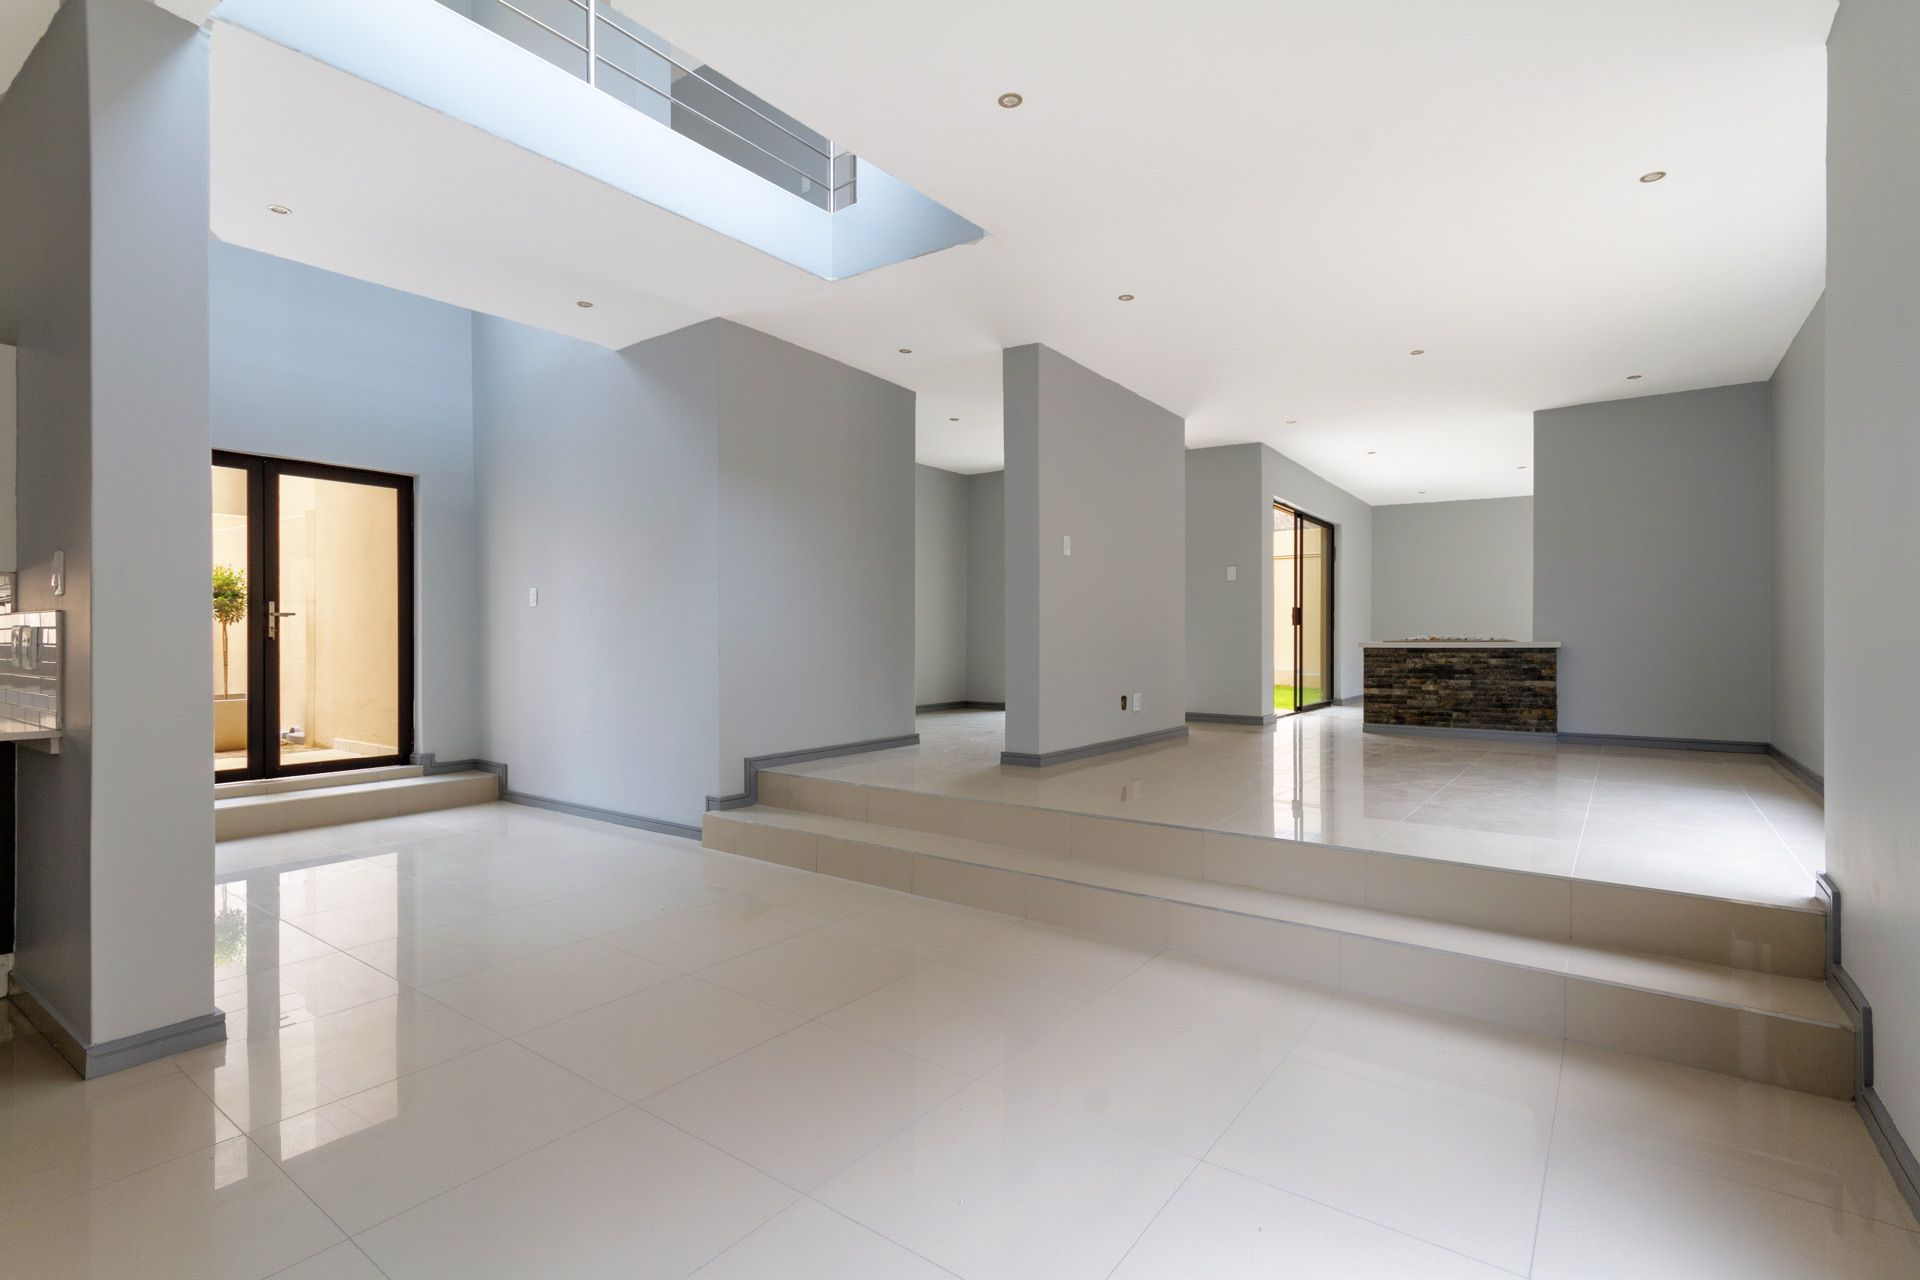 Entrance, open plan dining room and living room